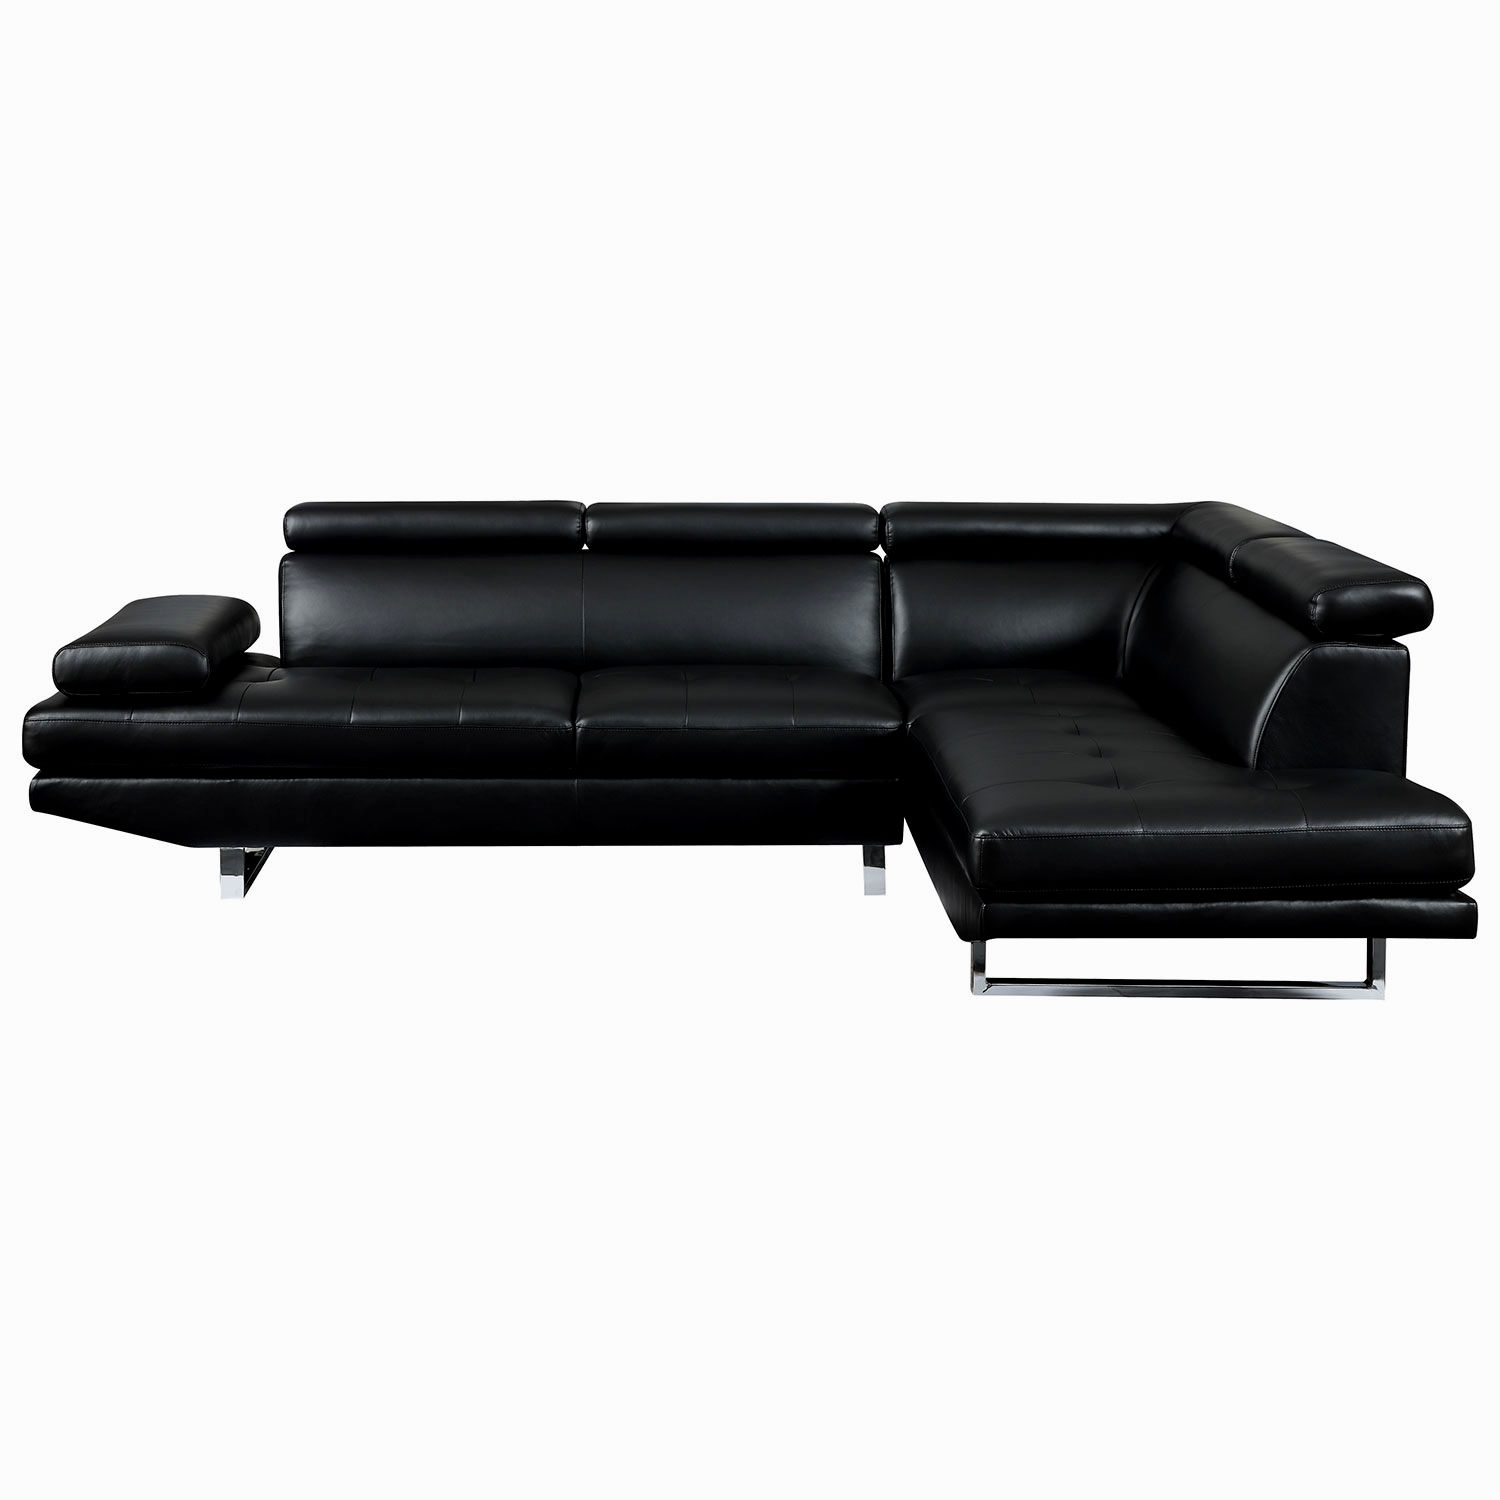 fresh 9 piece sectional sofa ideas-Elegant 9 Piece Sectional sofa Picture